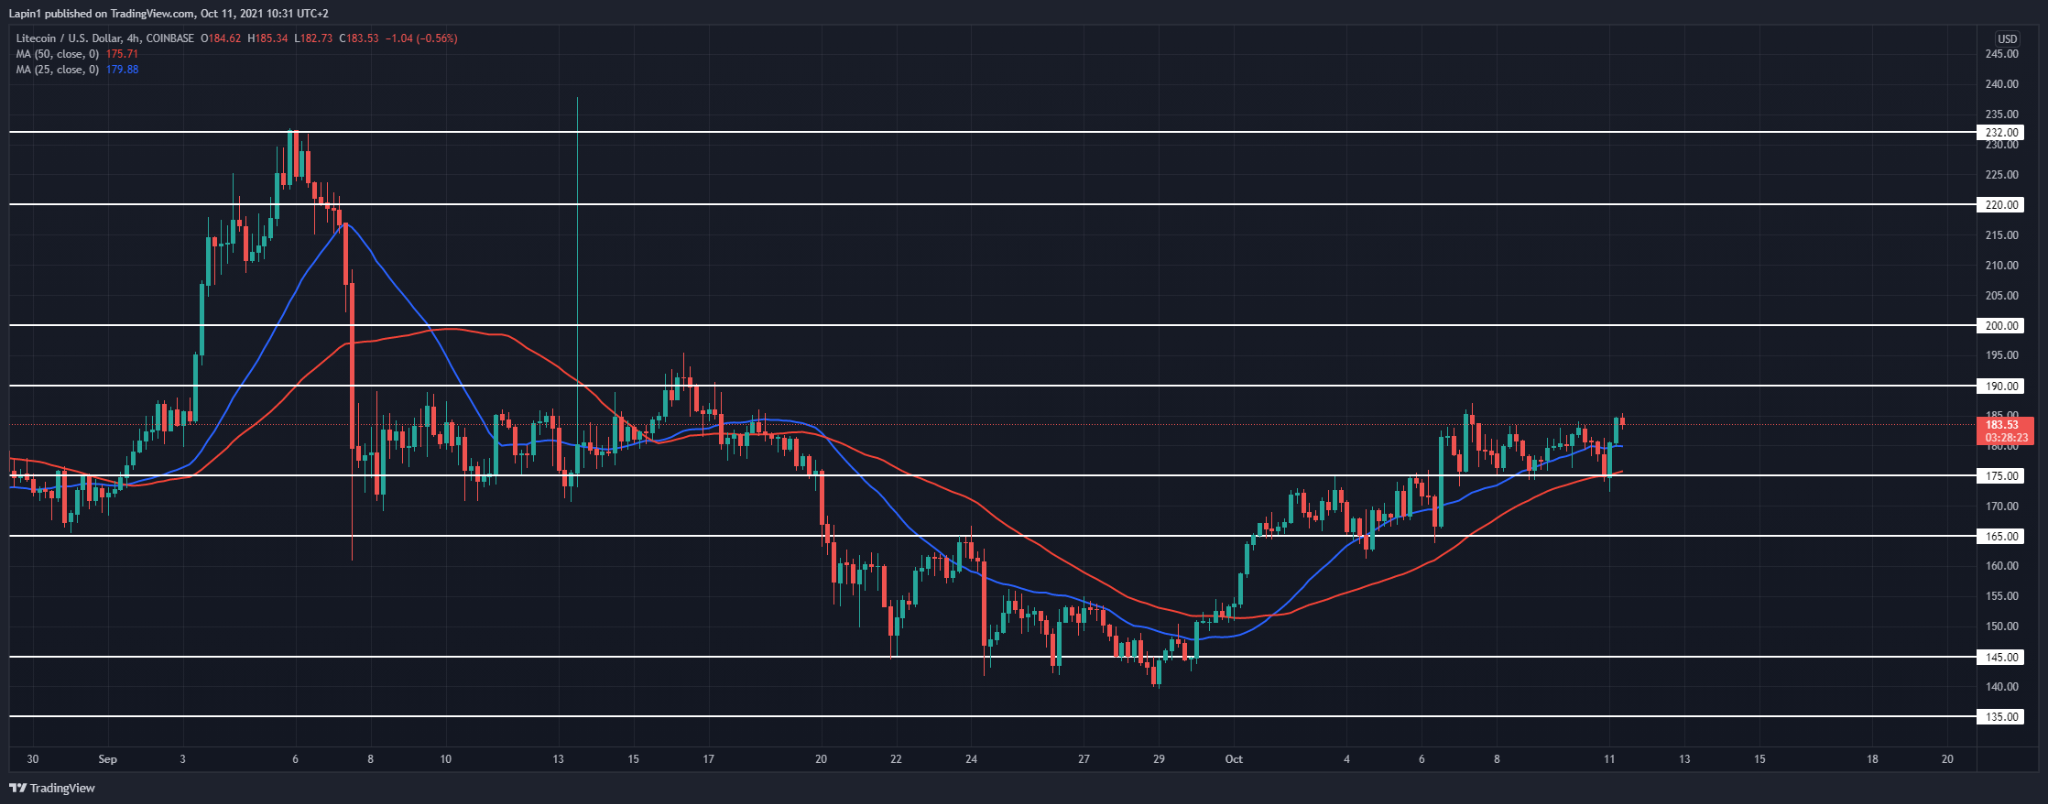 Litecoin Price Analysis: LTC bounces from $175 support, further upside to follow?